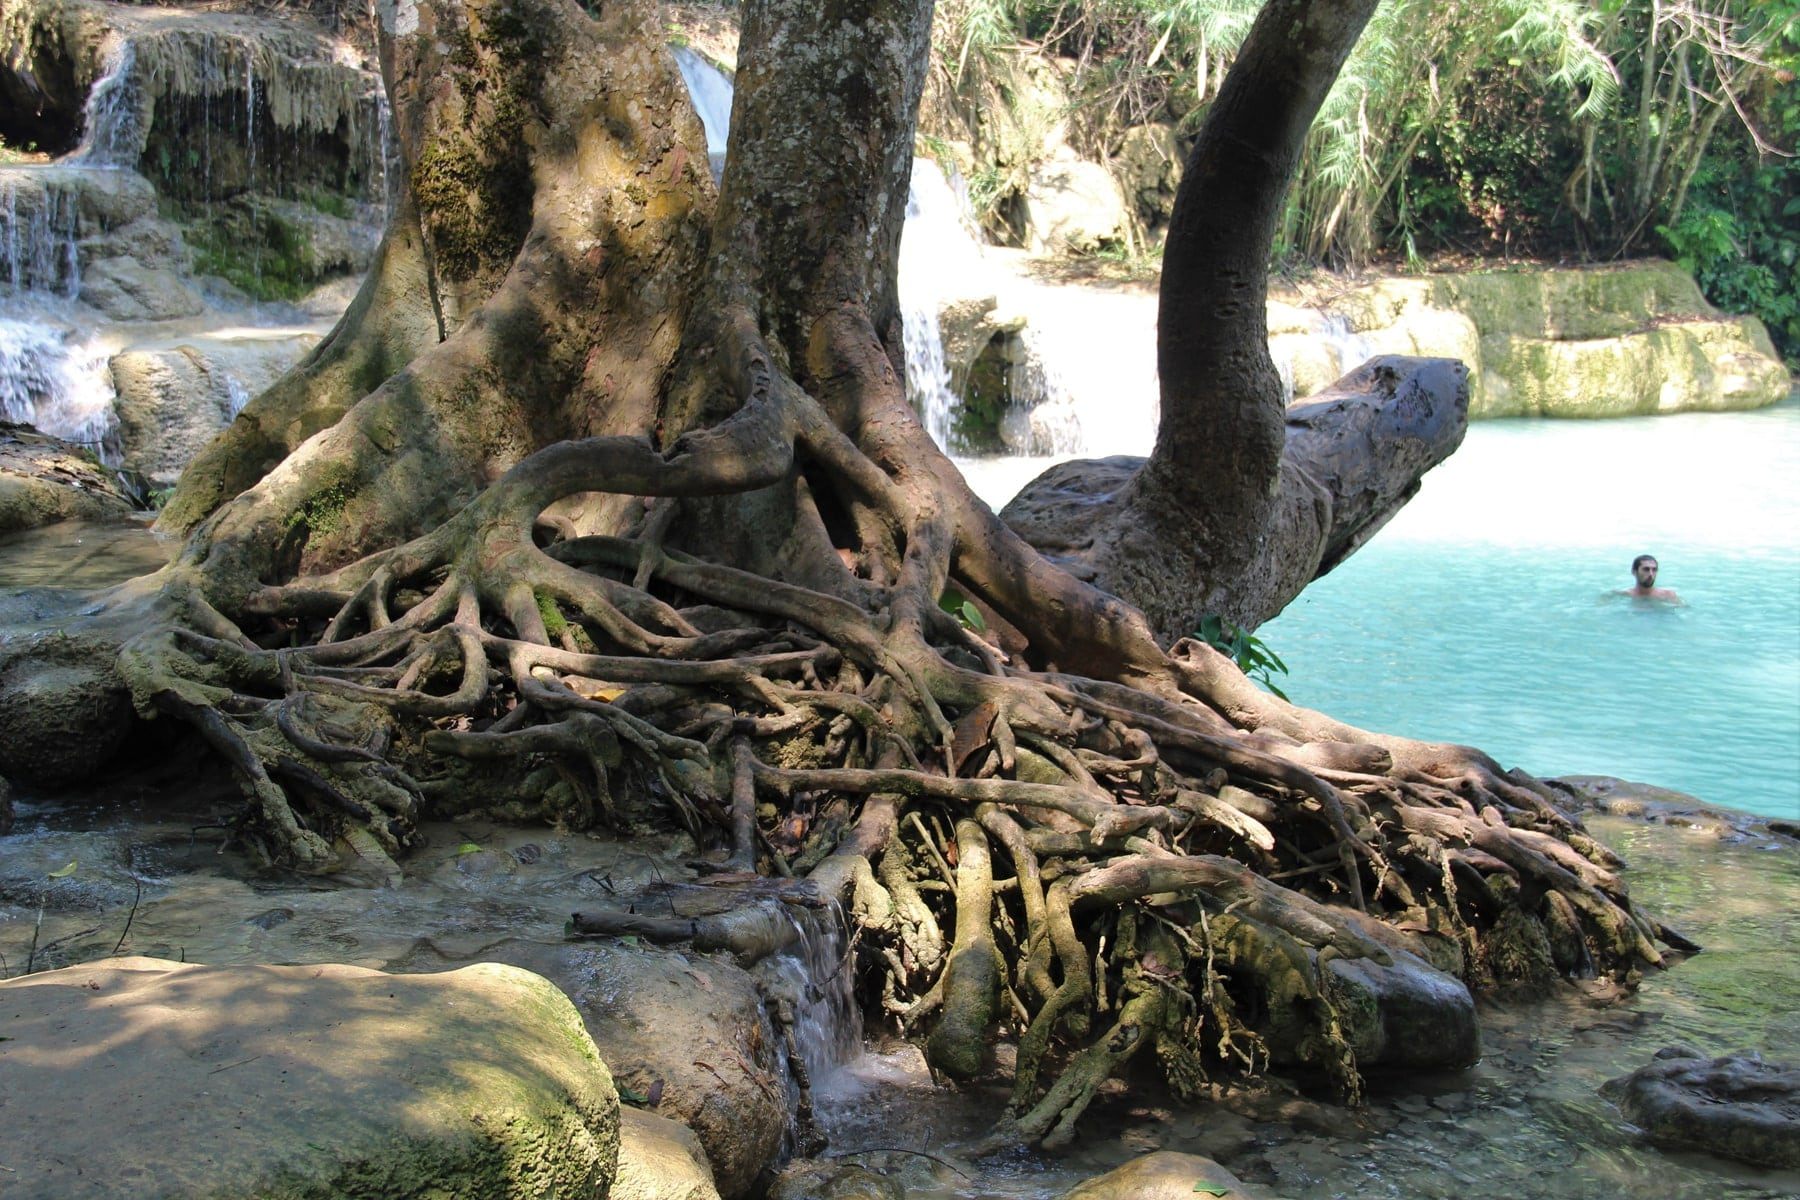 Trees with impressive roots next to natural pools in Kuang Si